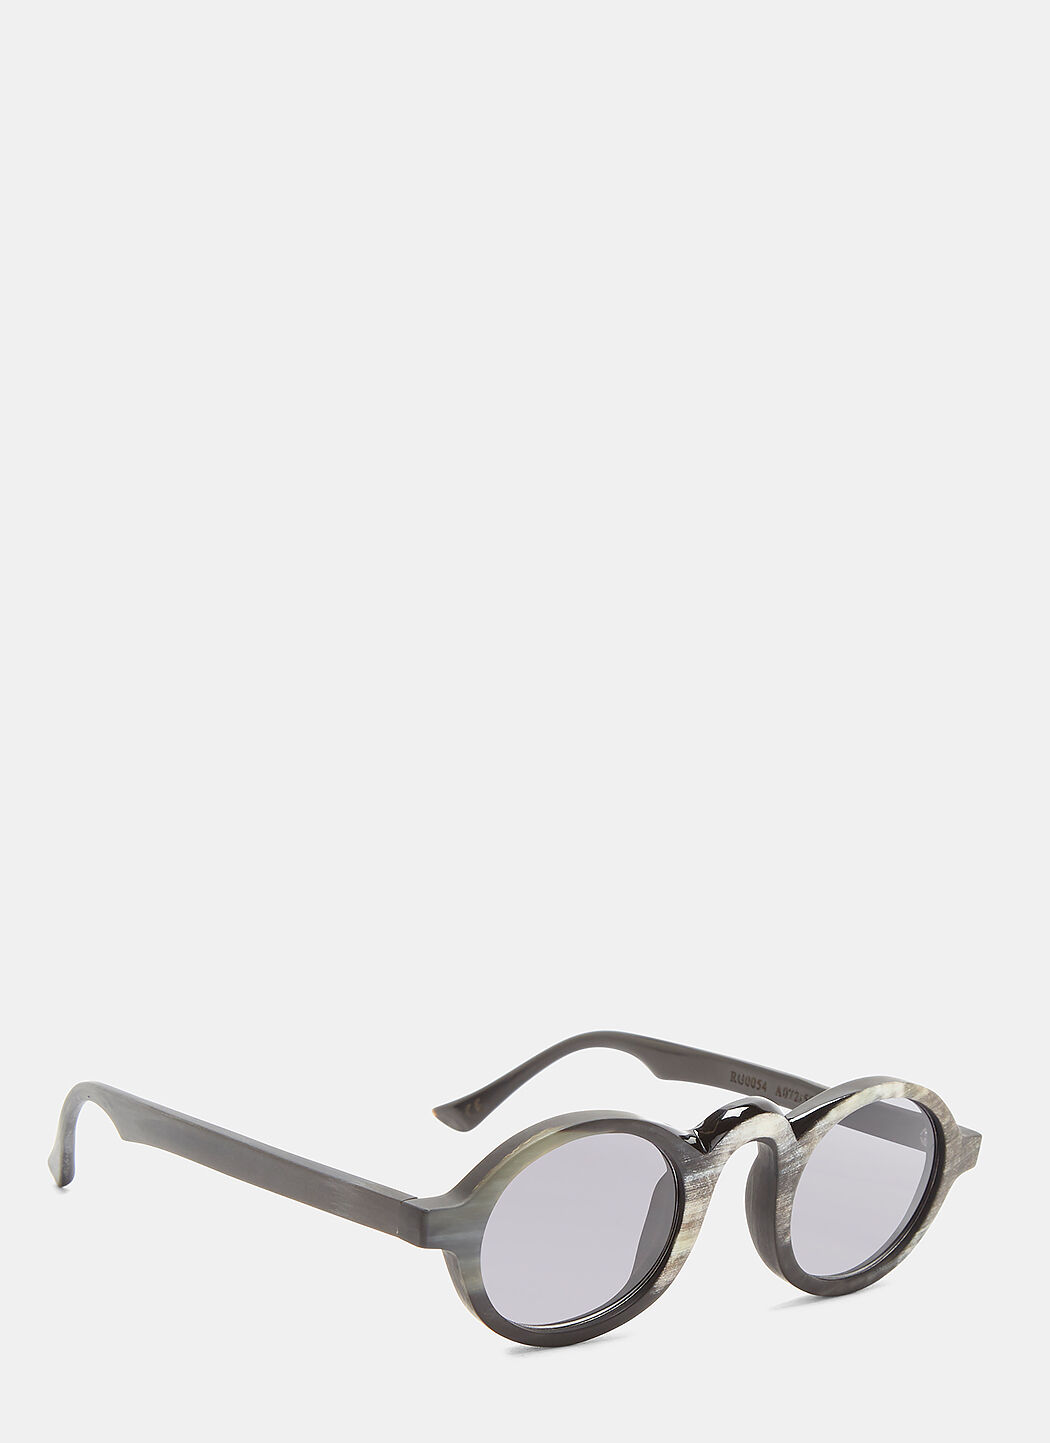 RG0054 Horn Oval Sunglasses Rigards